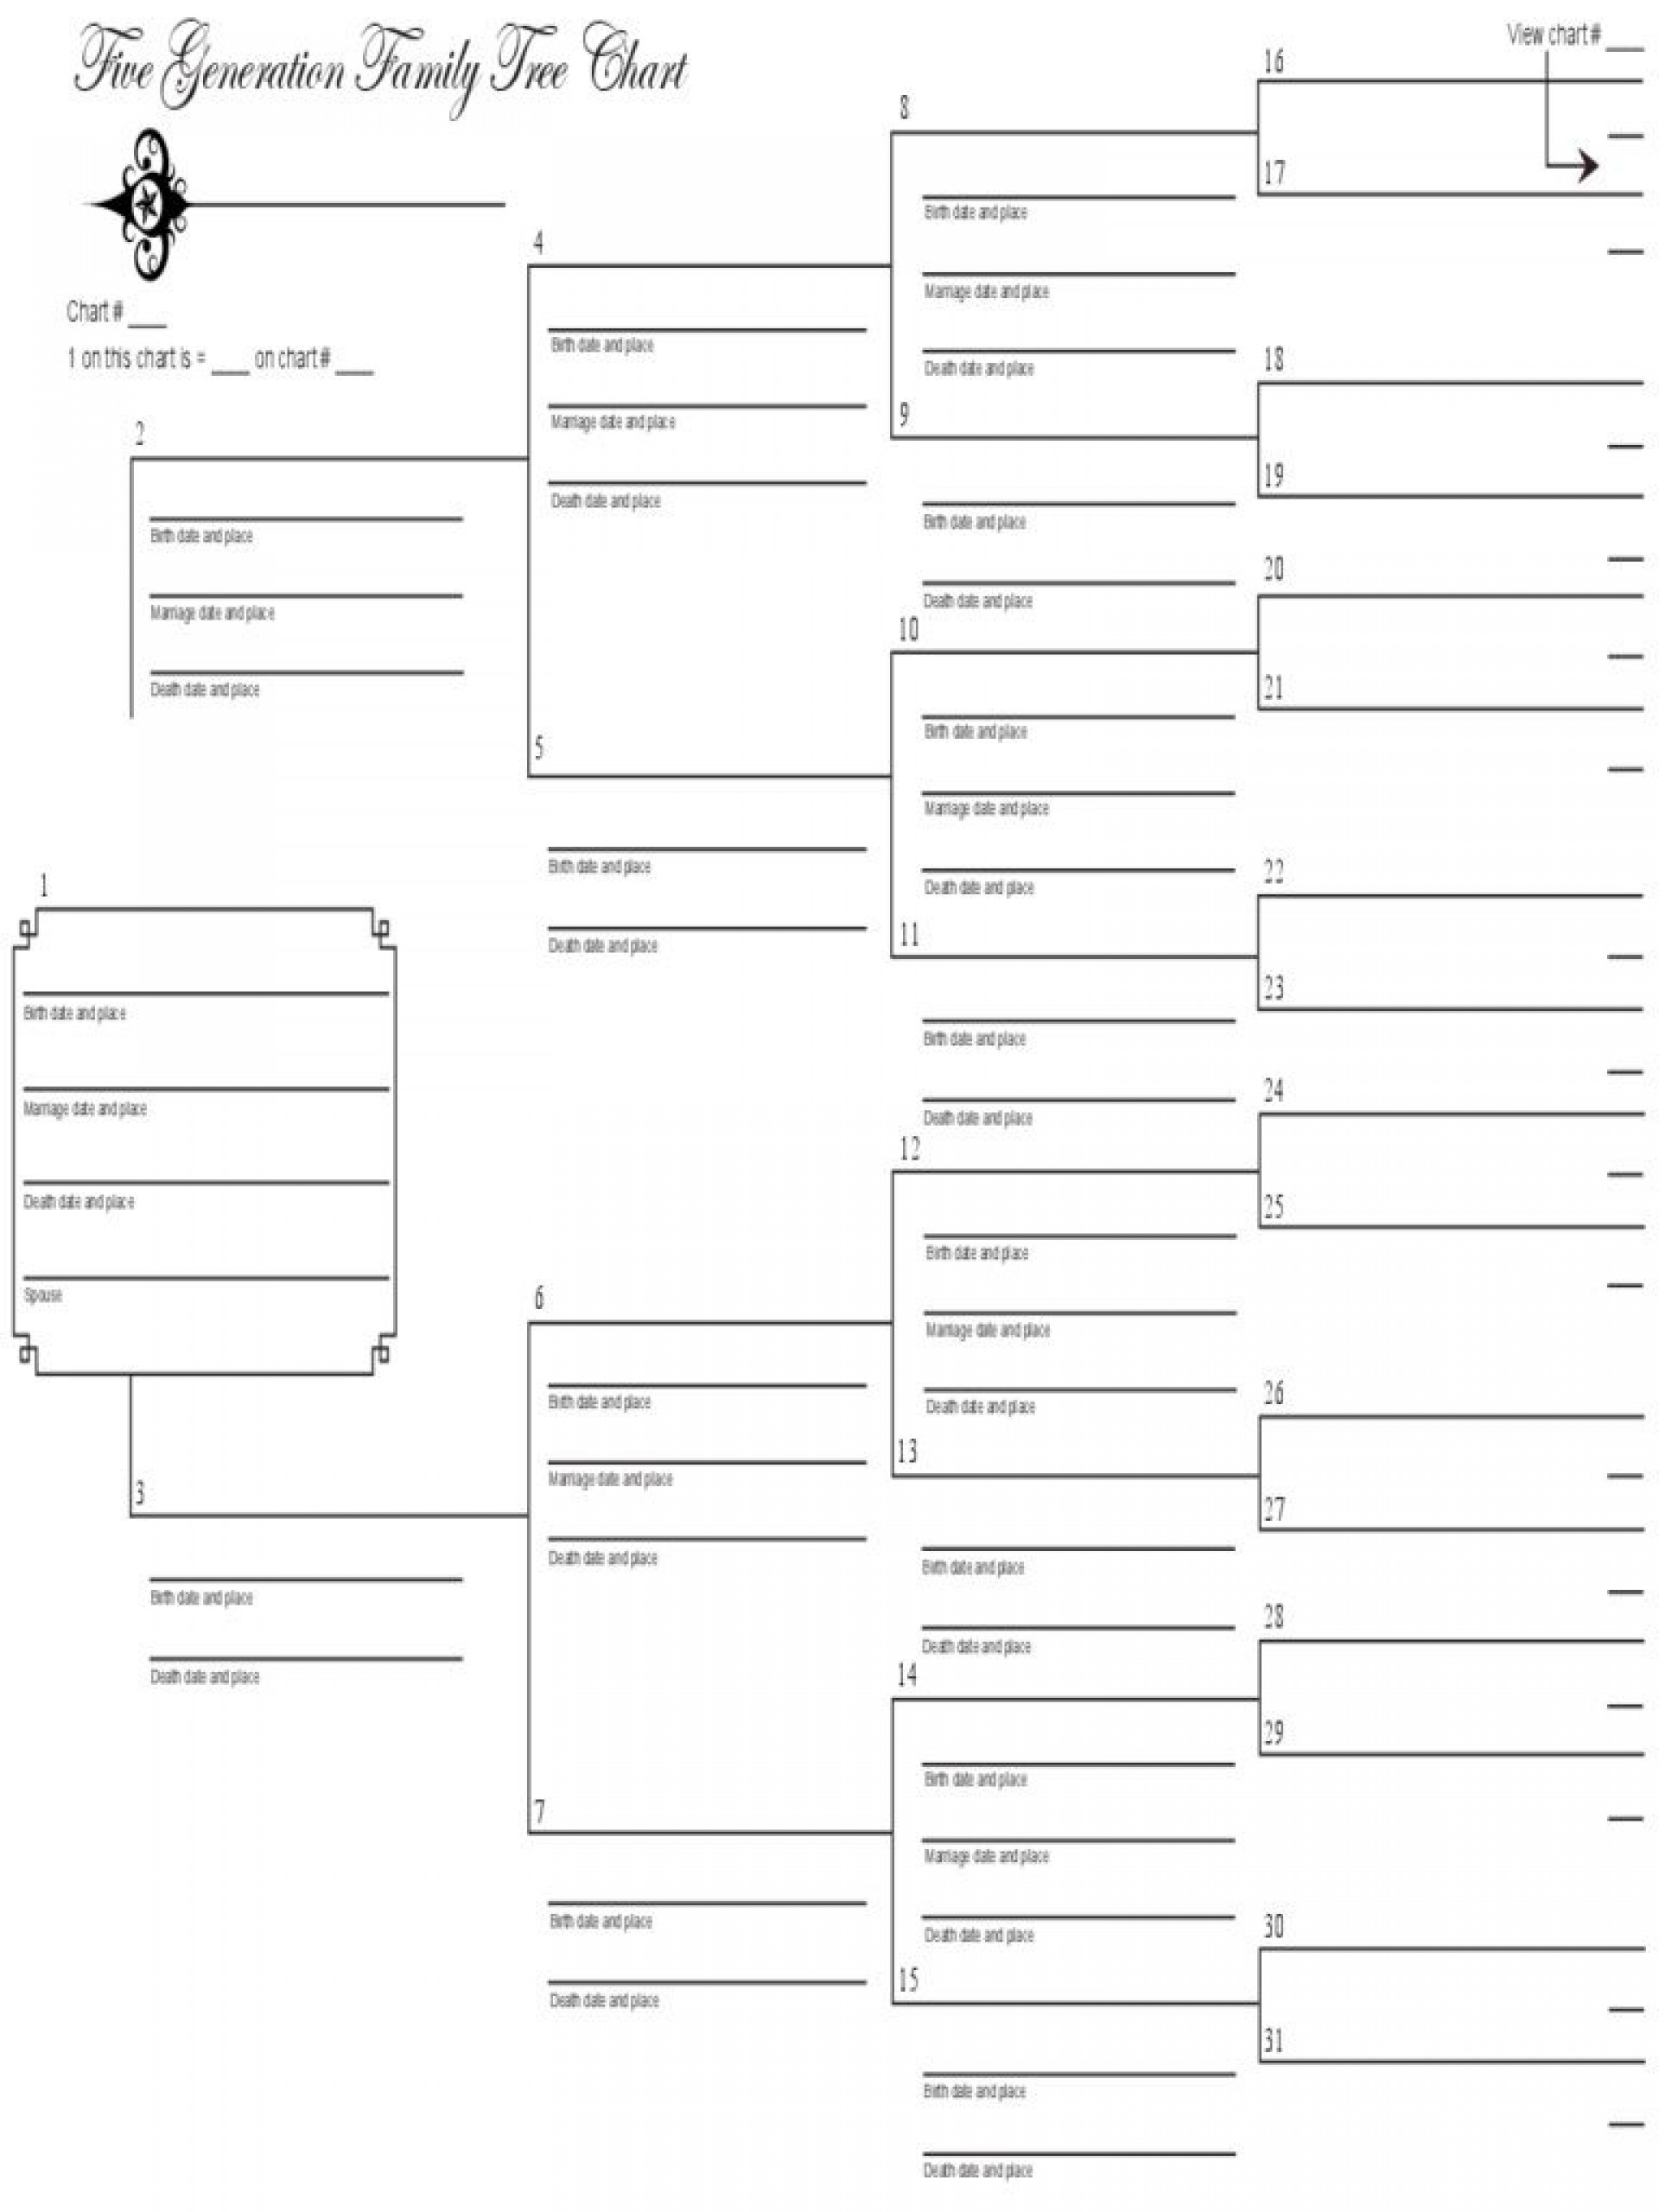 000 Stunning Excel Family Tree Template Idea  7 Generation 41920